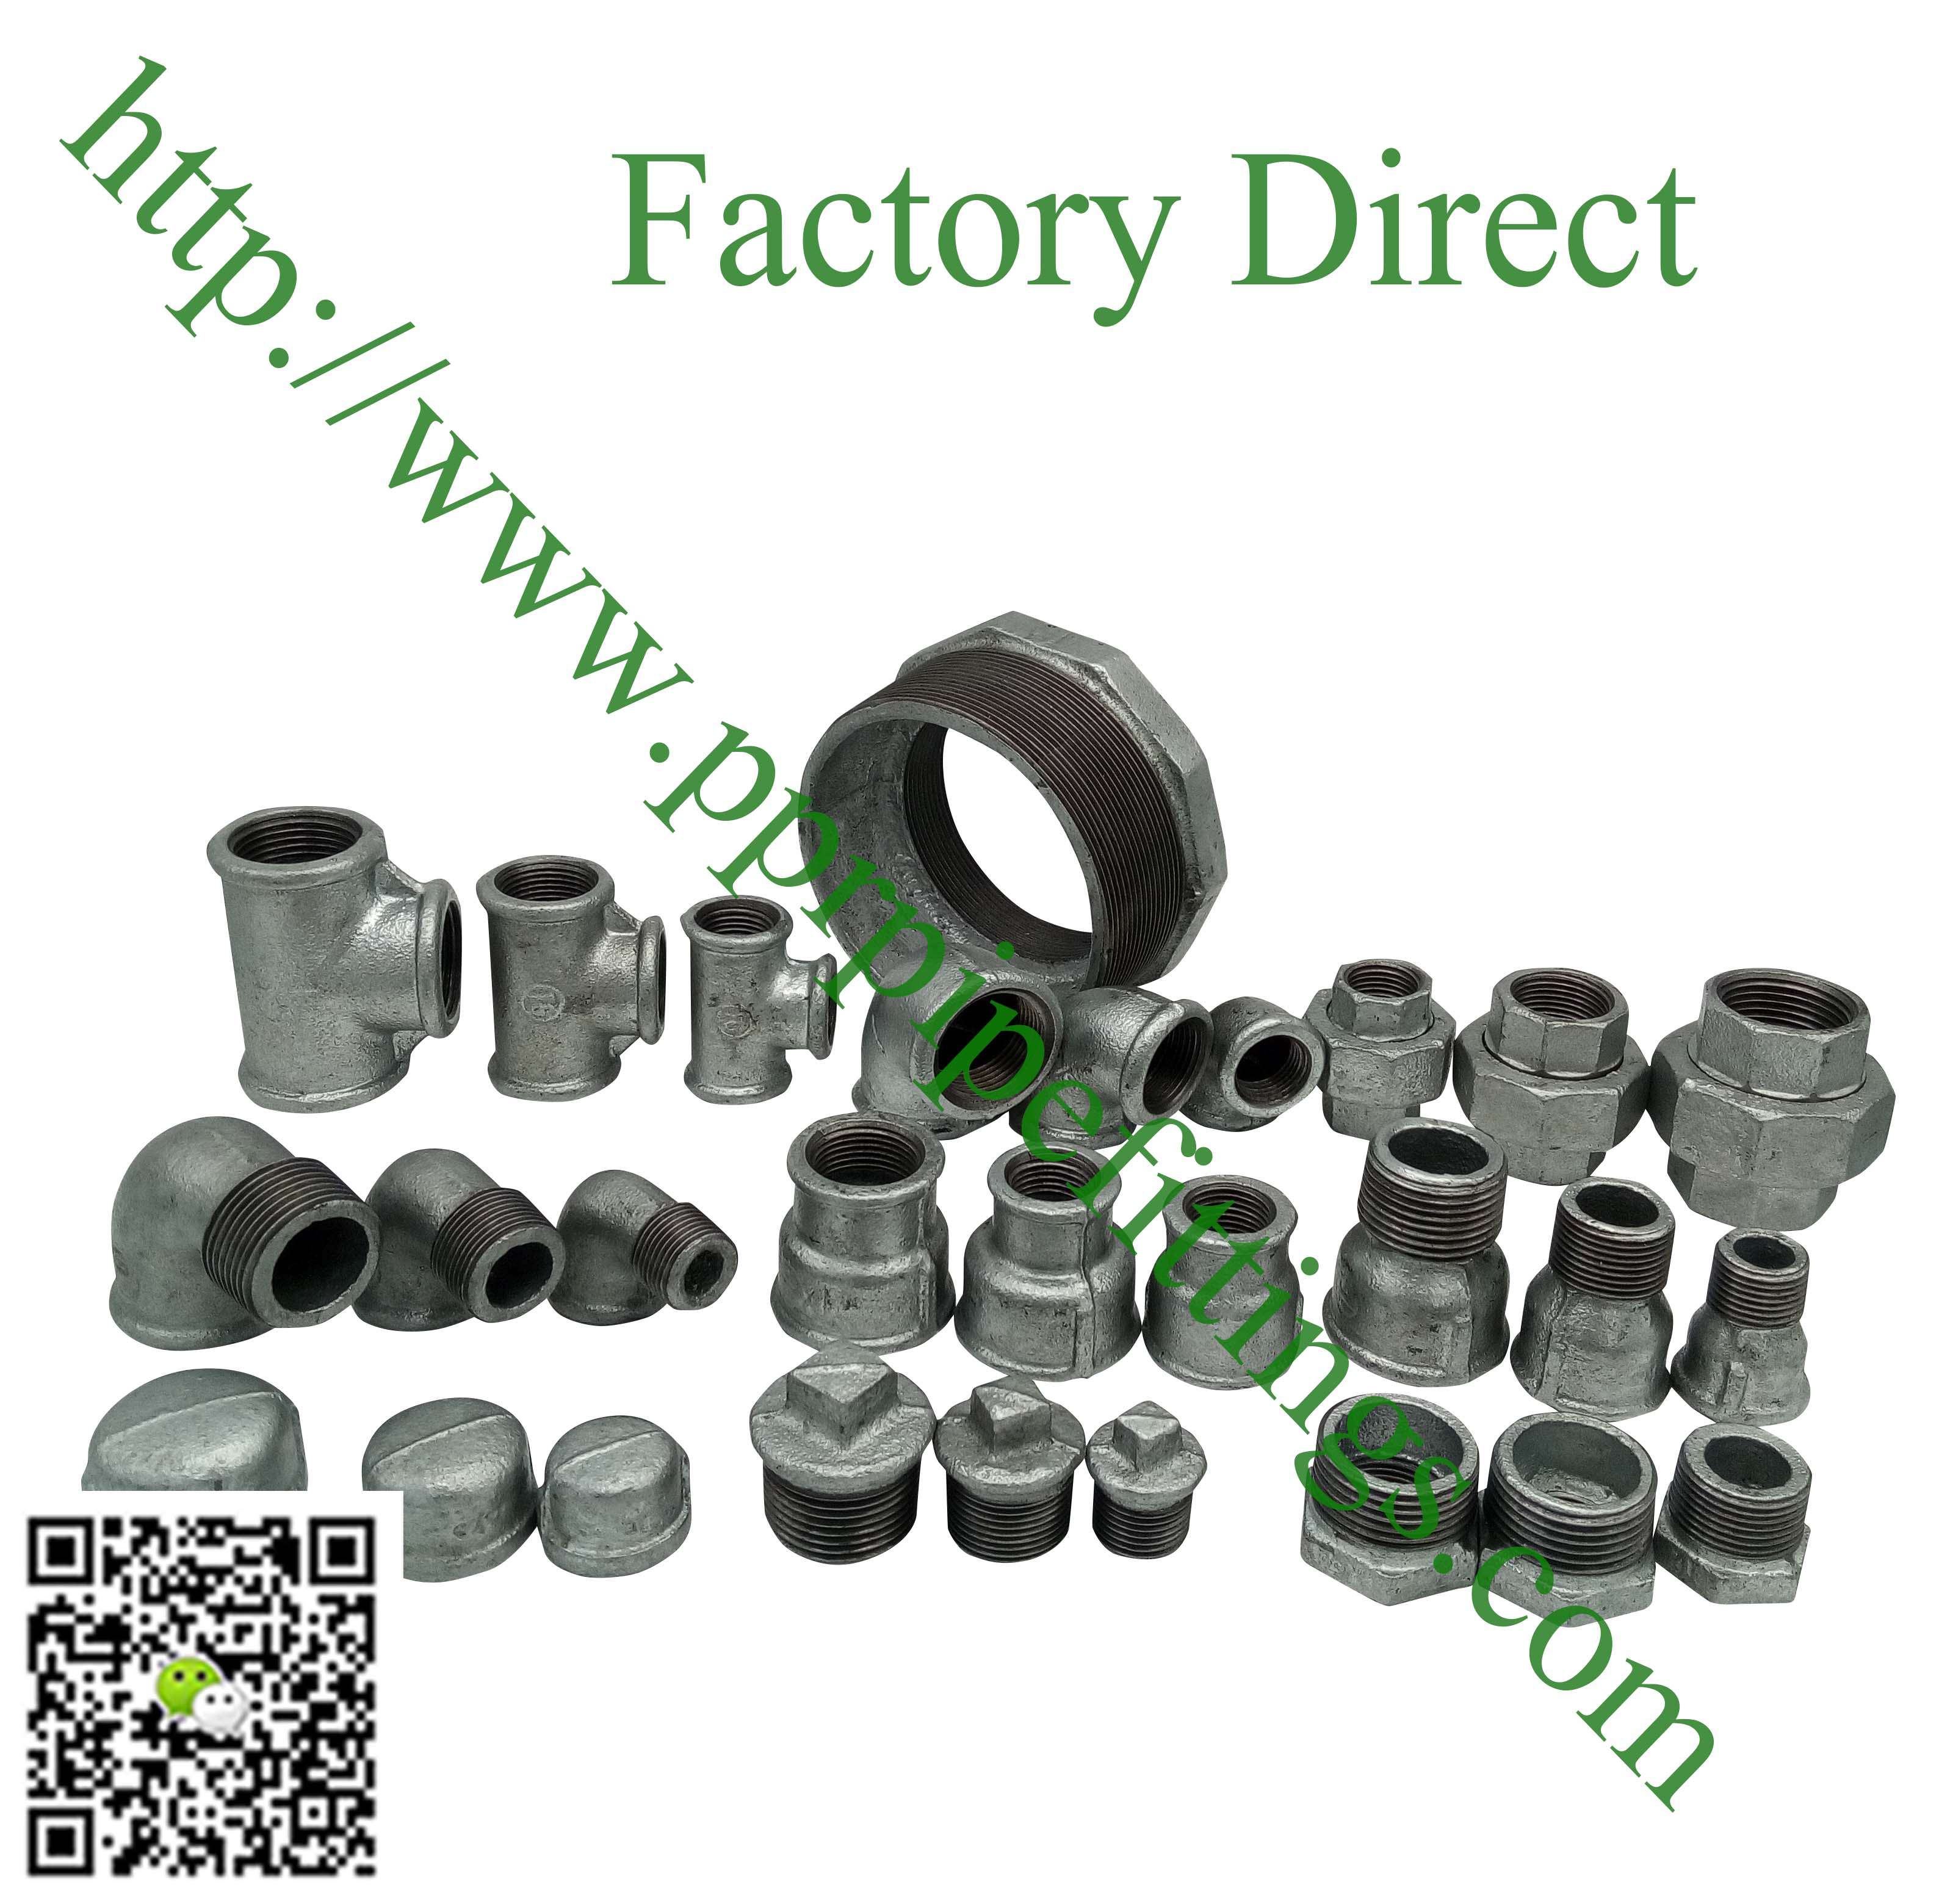 hot dipped beaded cast iron fittings